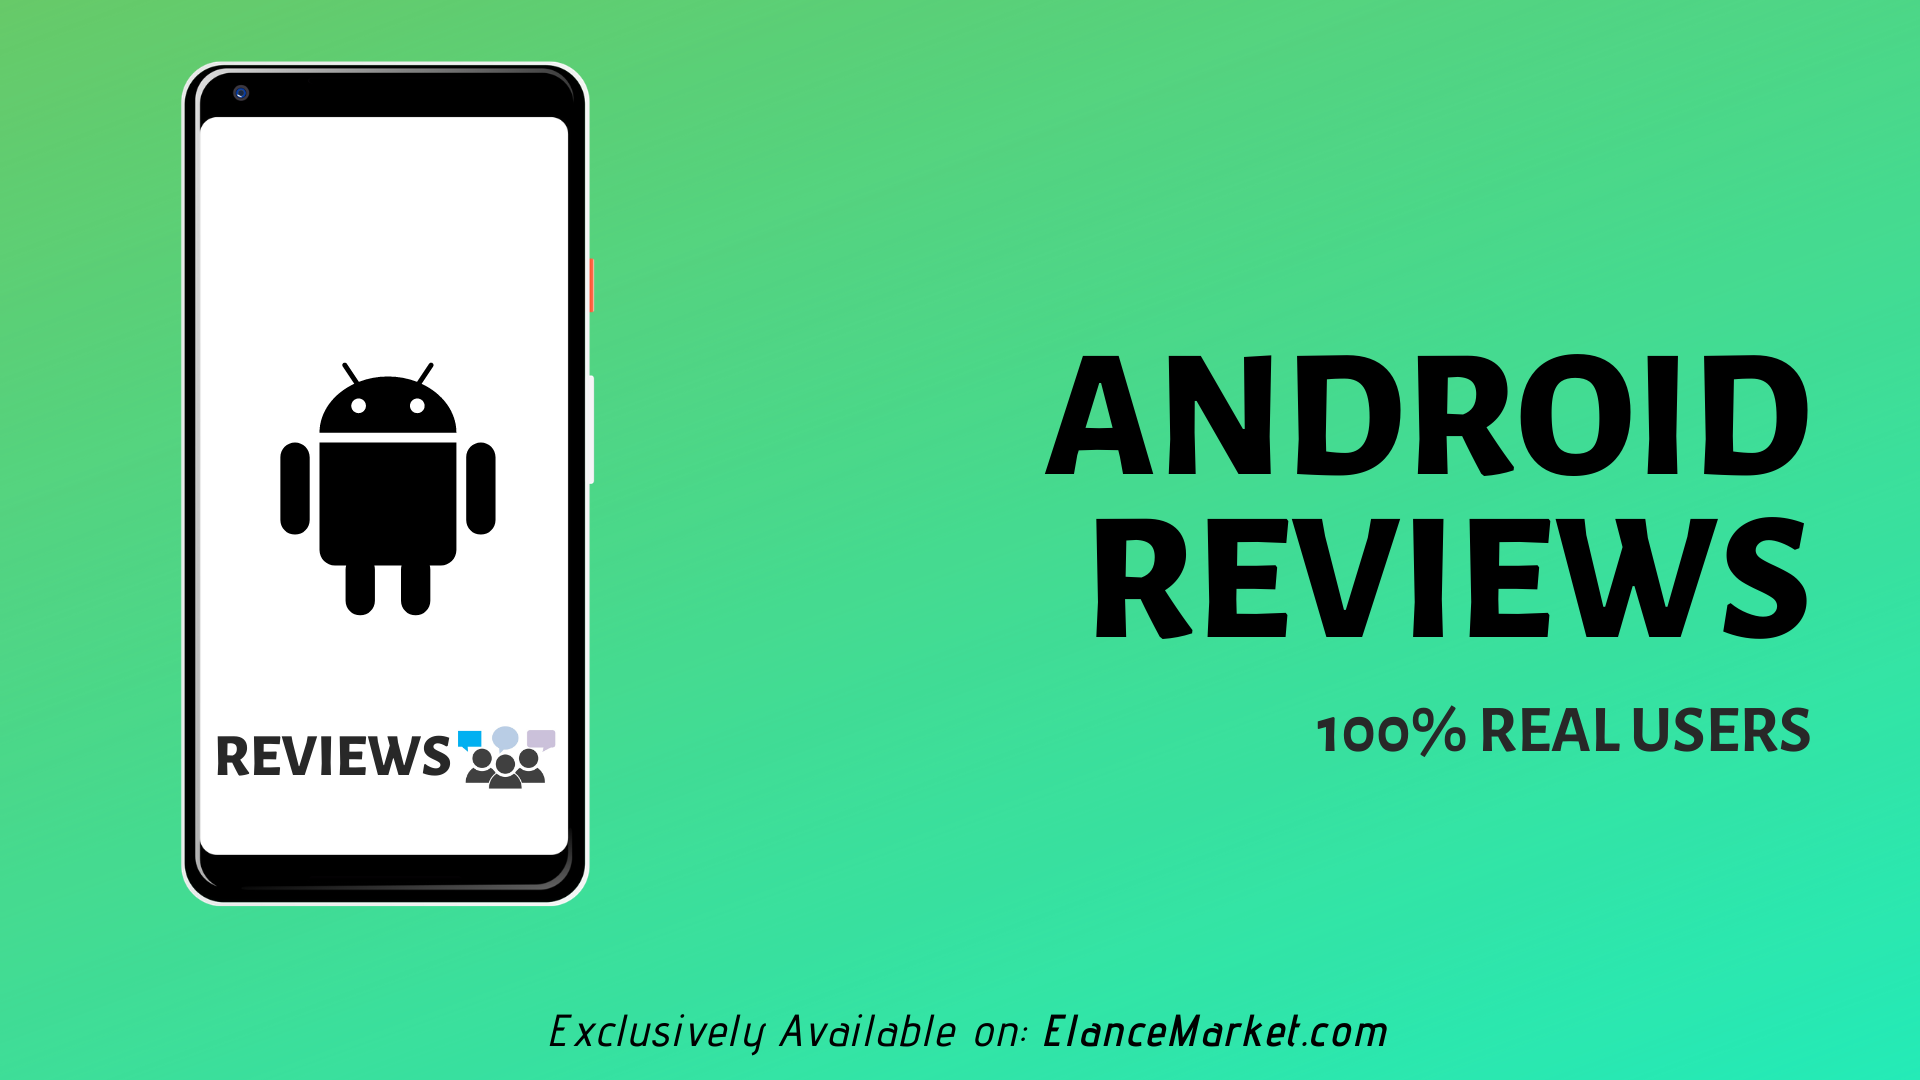 Buy Android Reviews | 100% Real Users